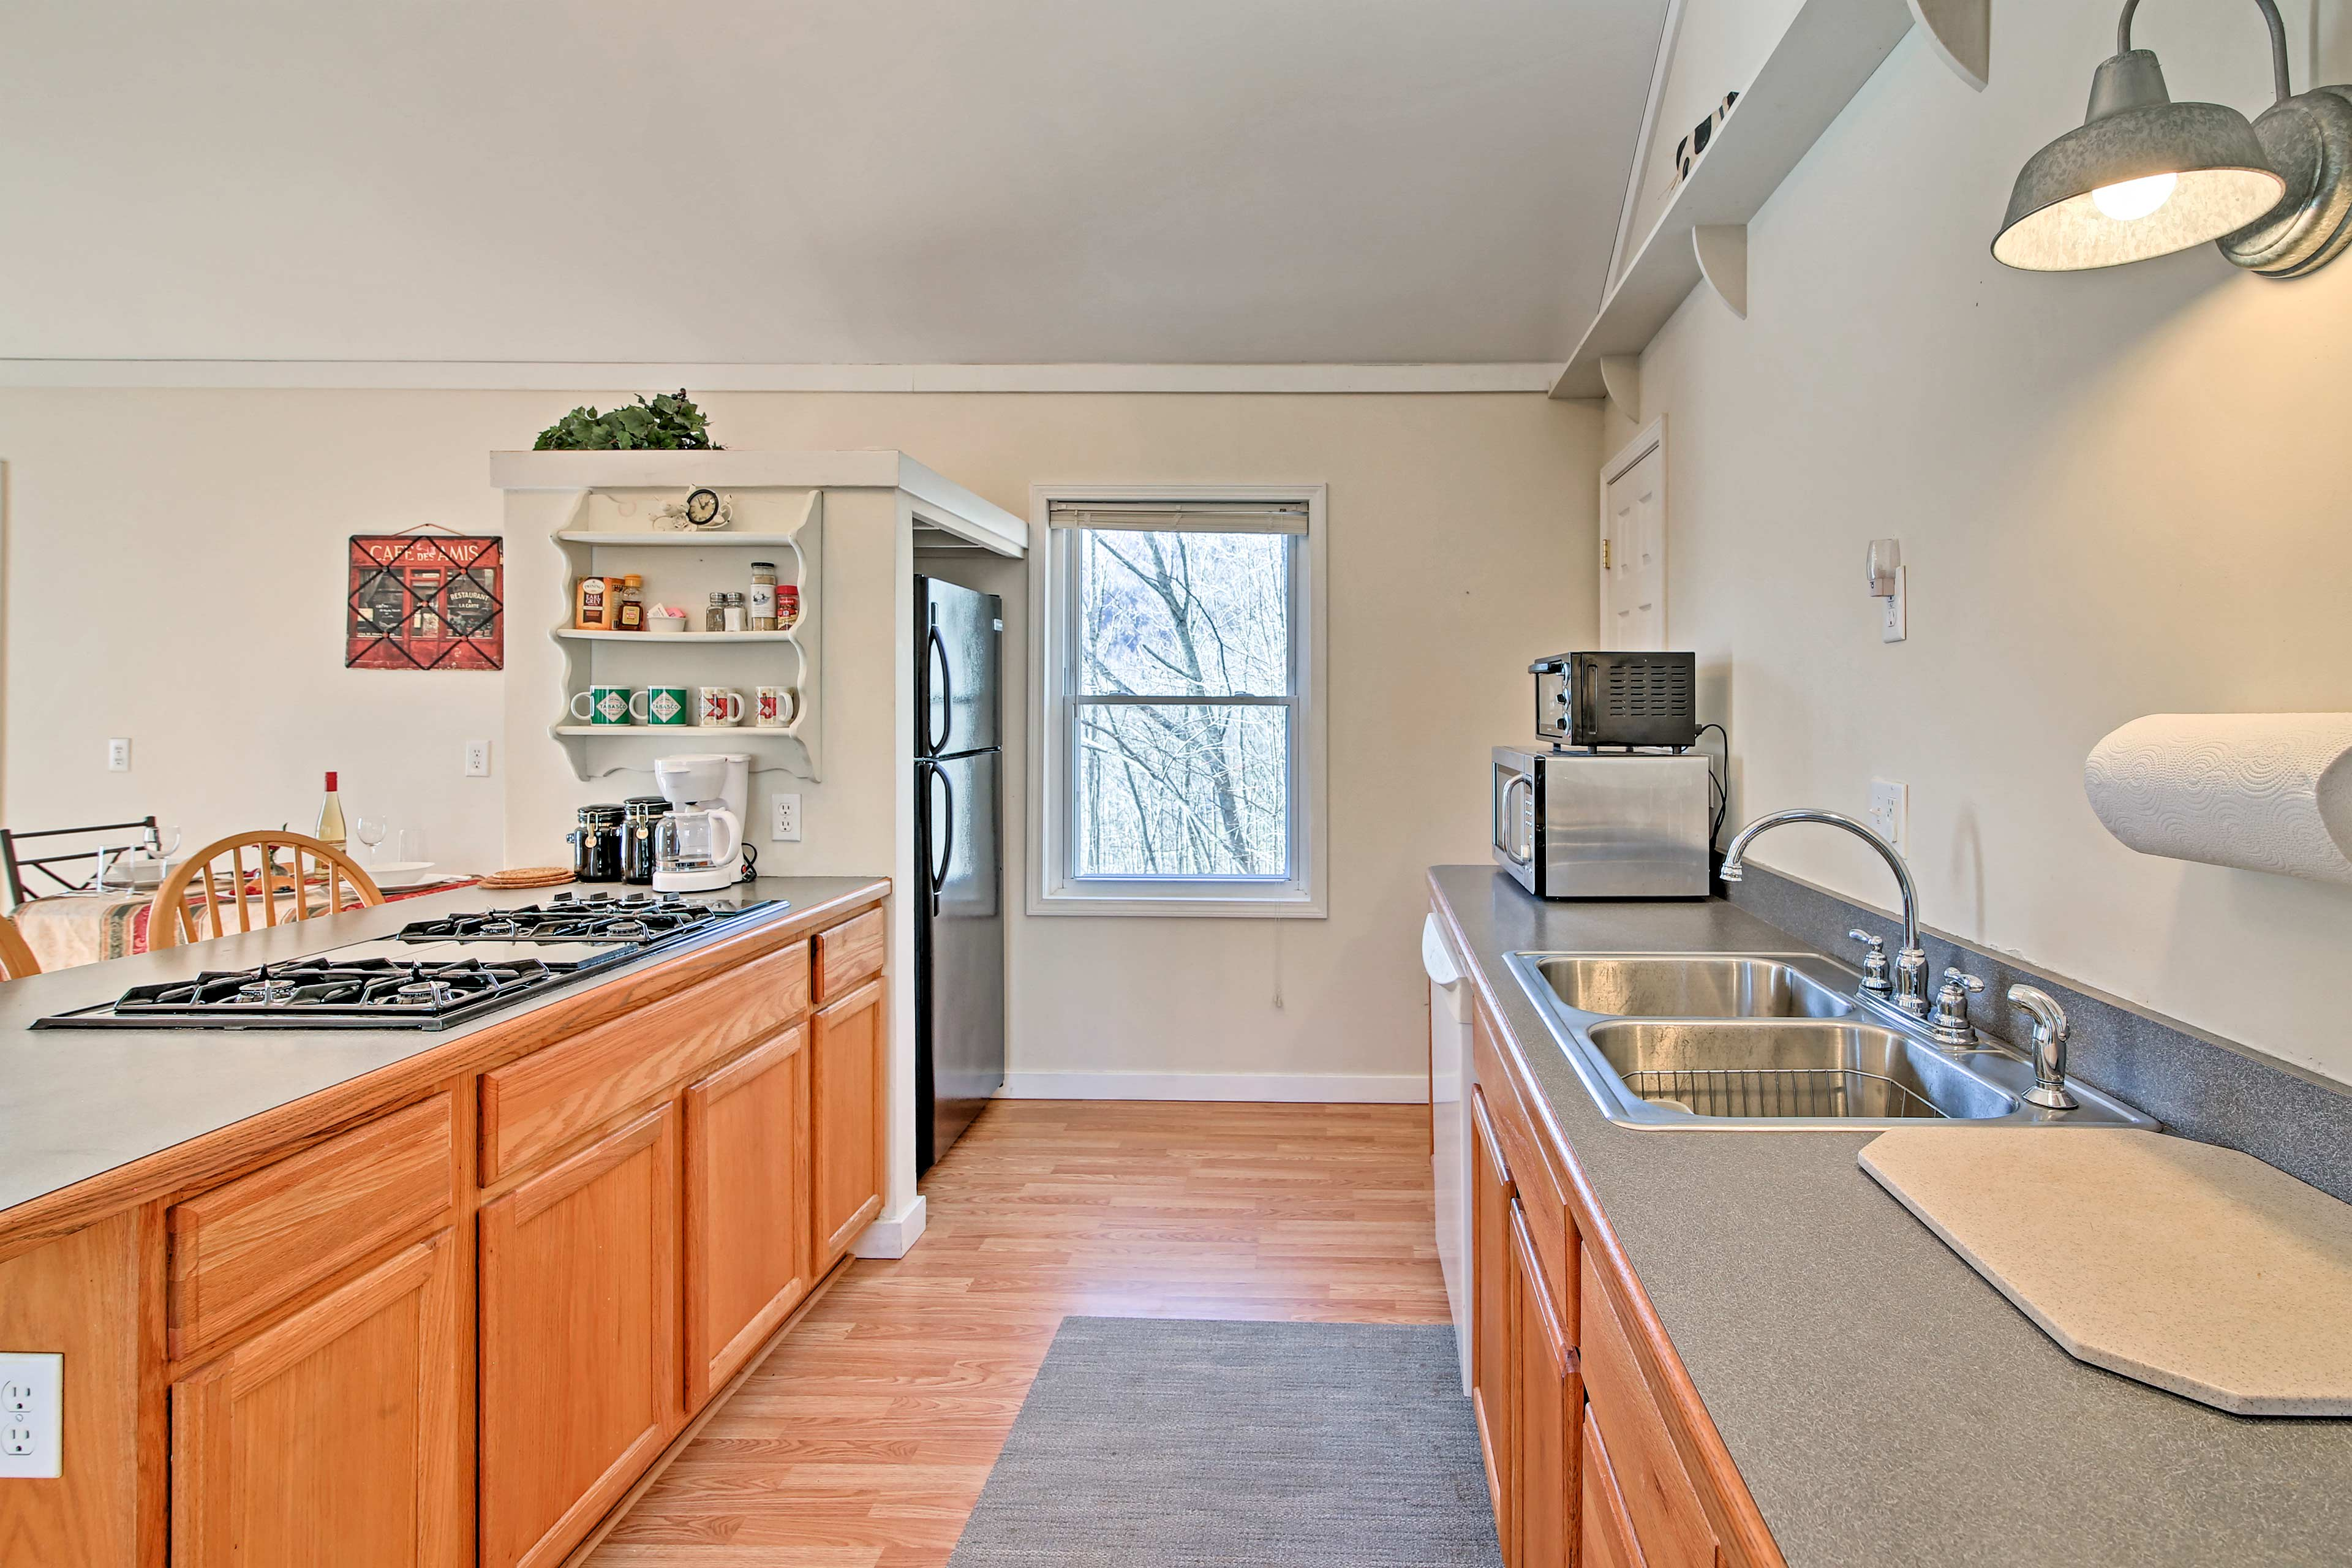 The kitchen is well-equipped to meet your culinary needs.